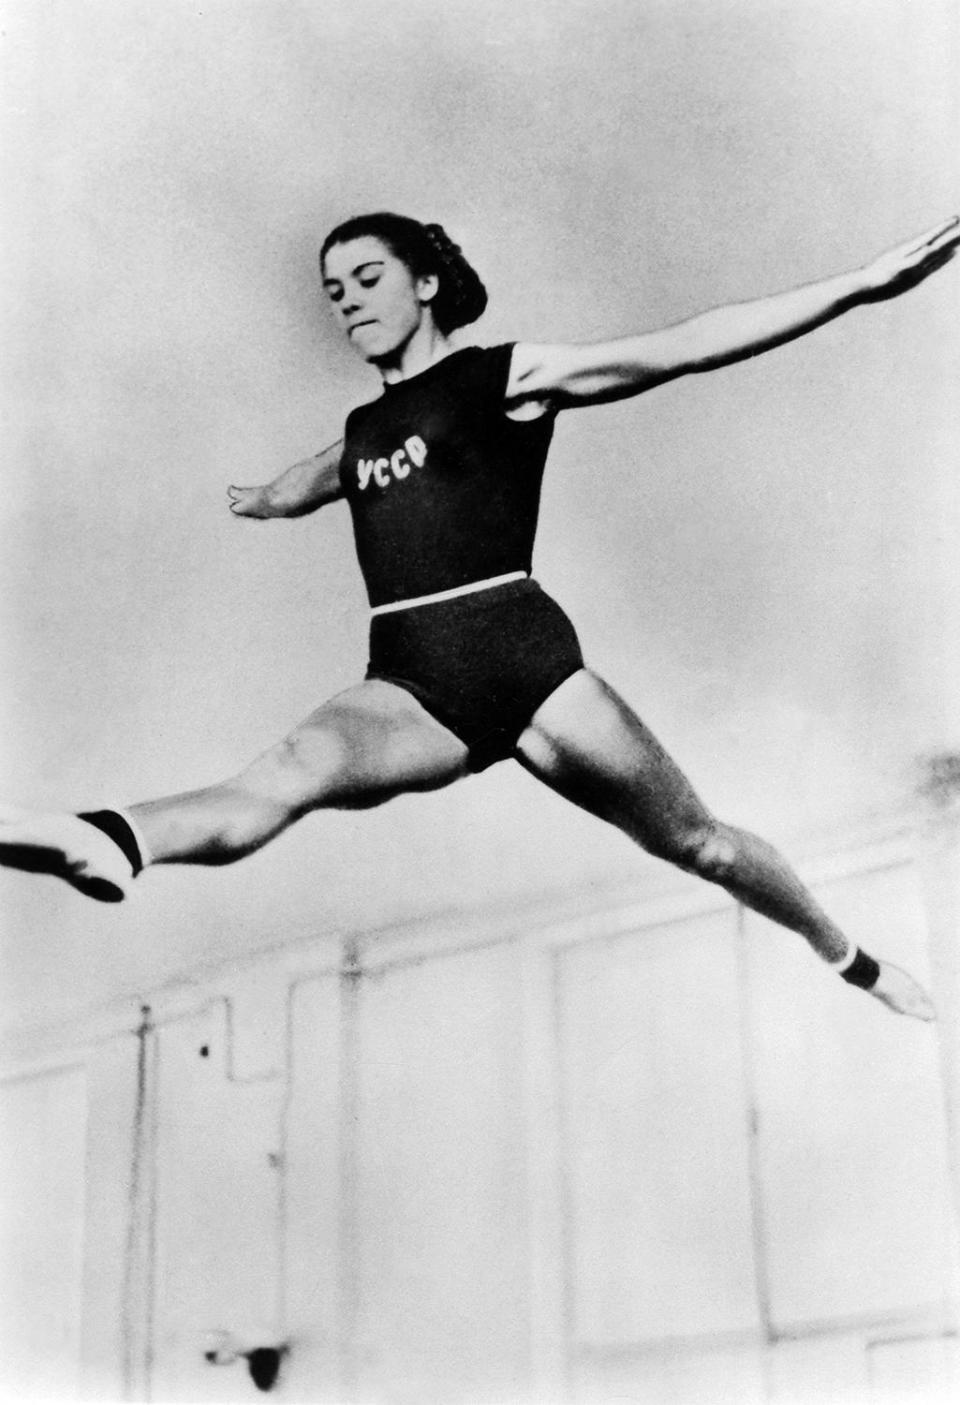 <p>Larisa Latynina performs at the 1956 Melbourne Olympics. (Photo by ullstein bild/ullstein bild via Getty Images) </p>